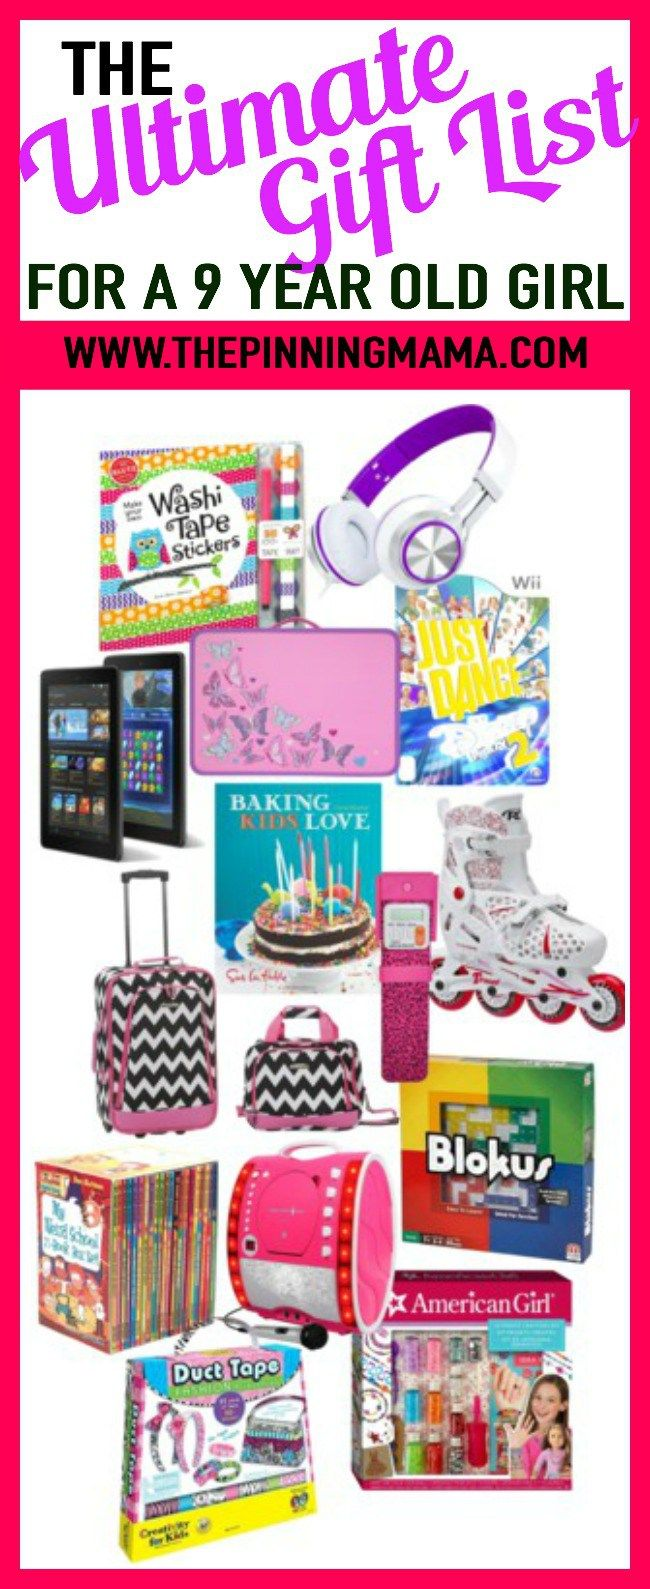 The Ultimate List Of Gift Ideas For A 9 Year Old Girl See 25 Best Put Together By 2 Moms With 6 Ki